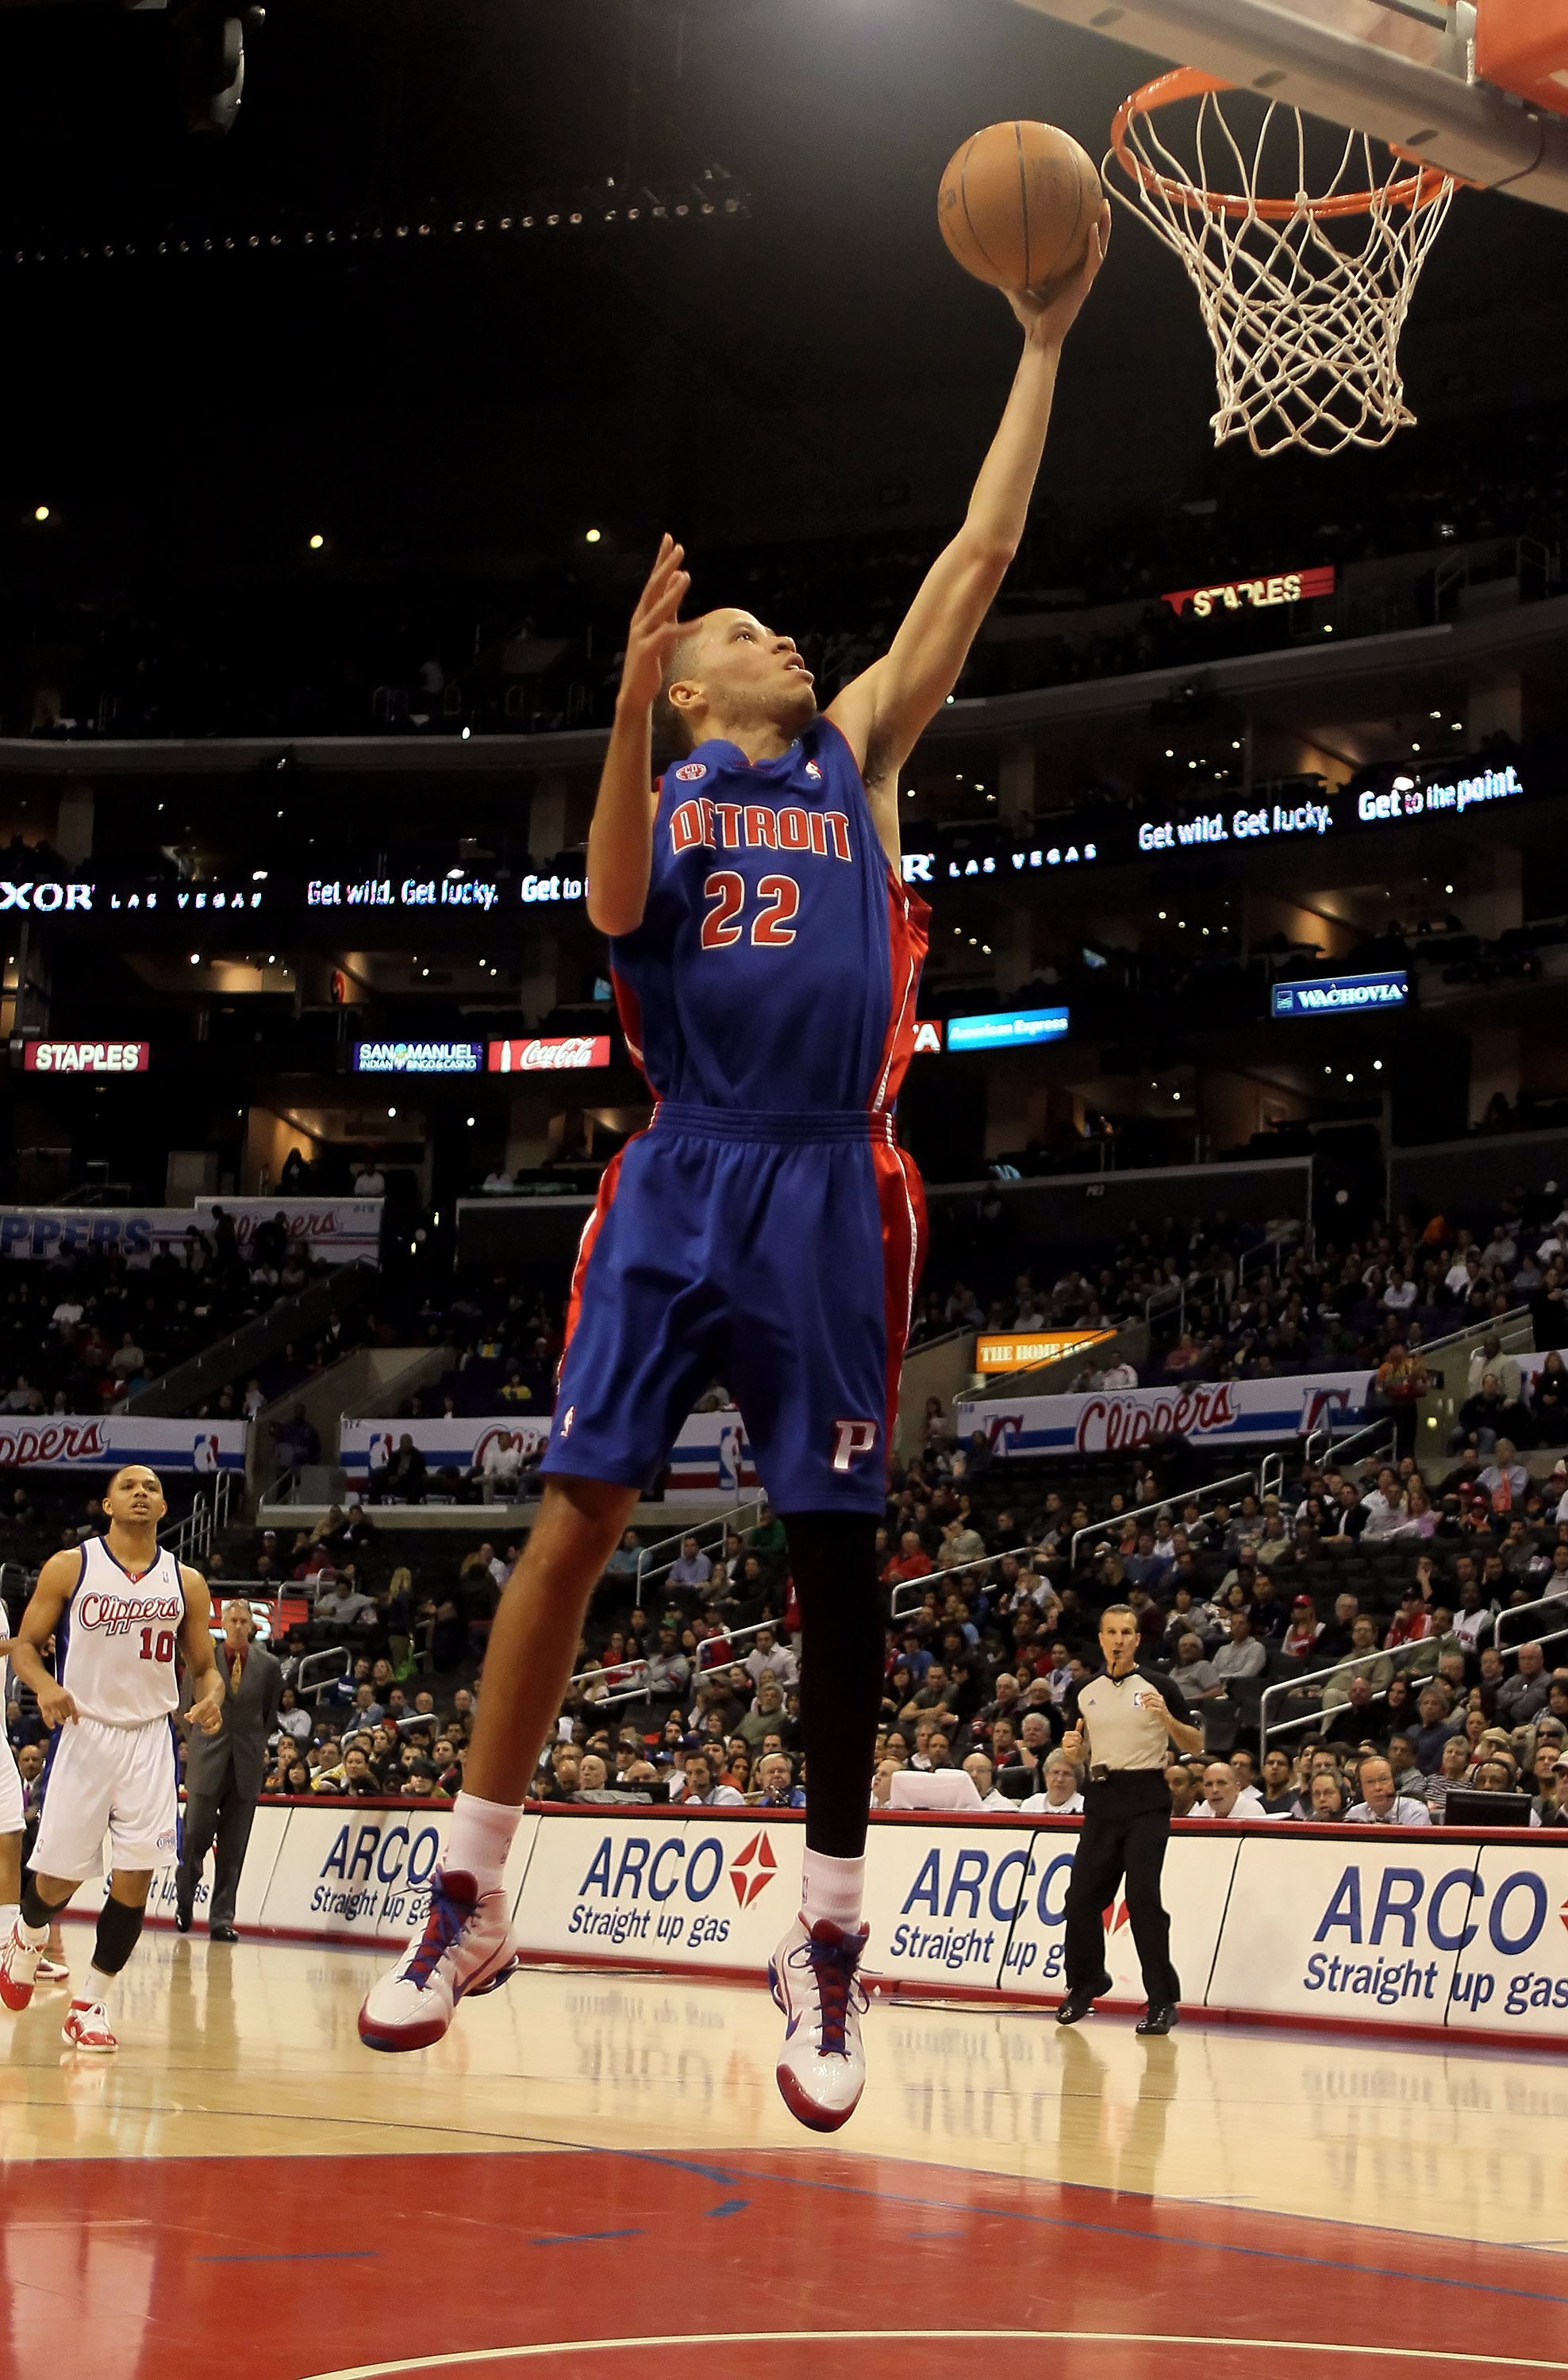 LOS ANGELES, CA - FEBRUARY 24:  Tayshaun Prince #22 of the Detroit Pistons drives to the basket for a layup against the Los Angeles Clippers during the first half at Staples Center on February 24, 2010 in Los Angeles, California. NOTE TO USER: User expres